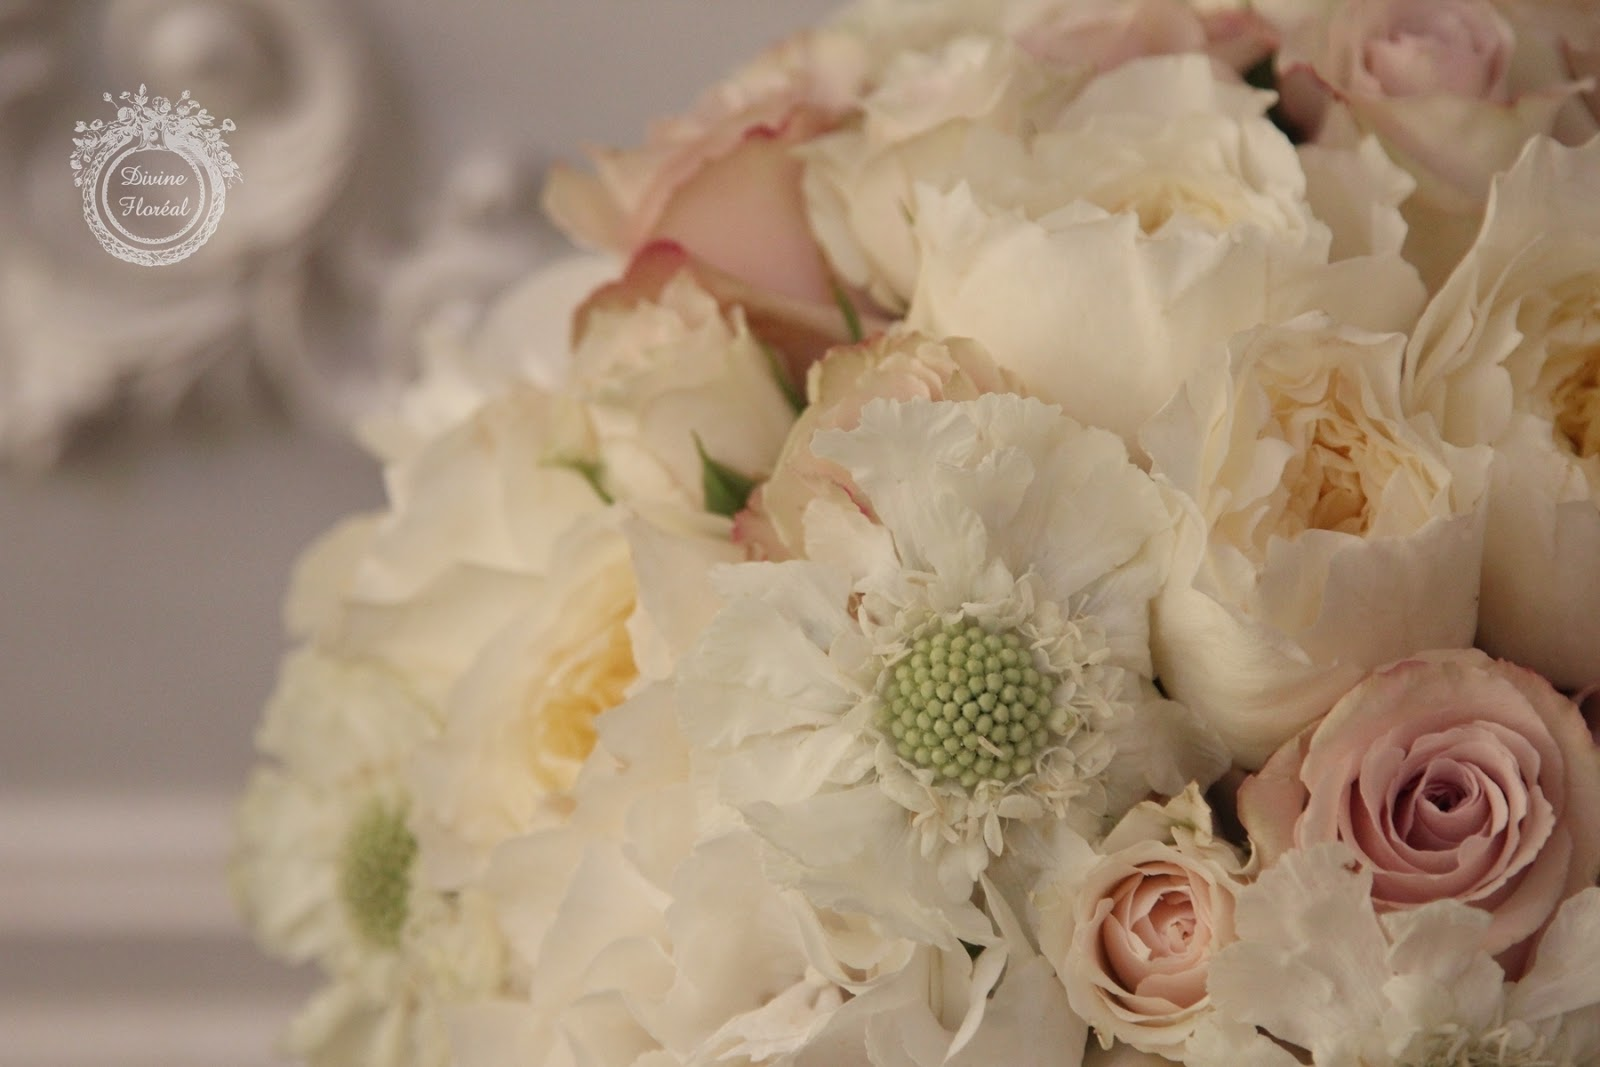 White Patience Garden Rose divine floréal: white and blush wedding at the hong kong club